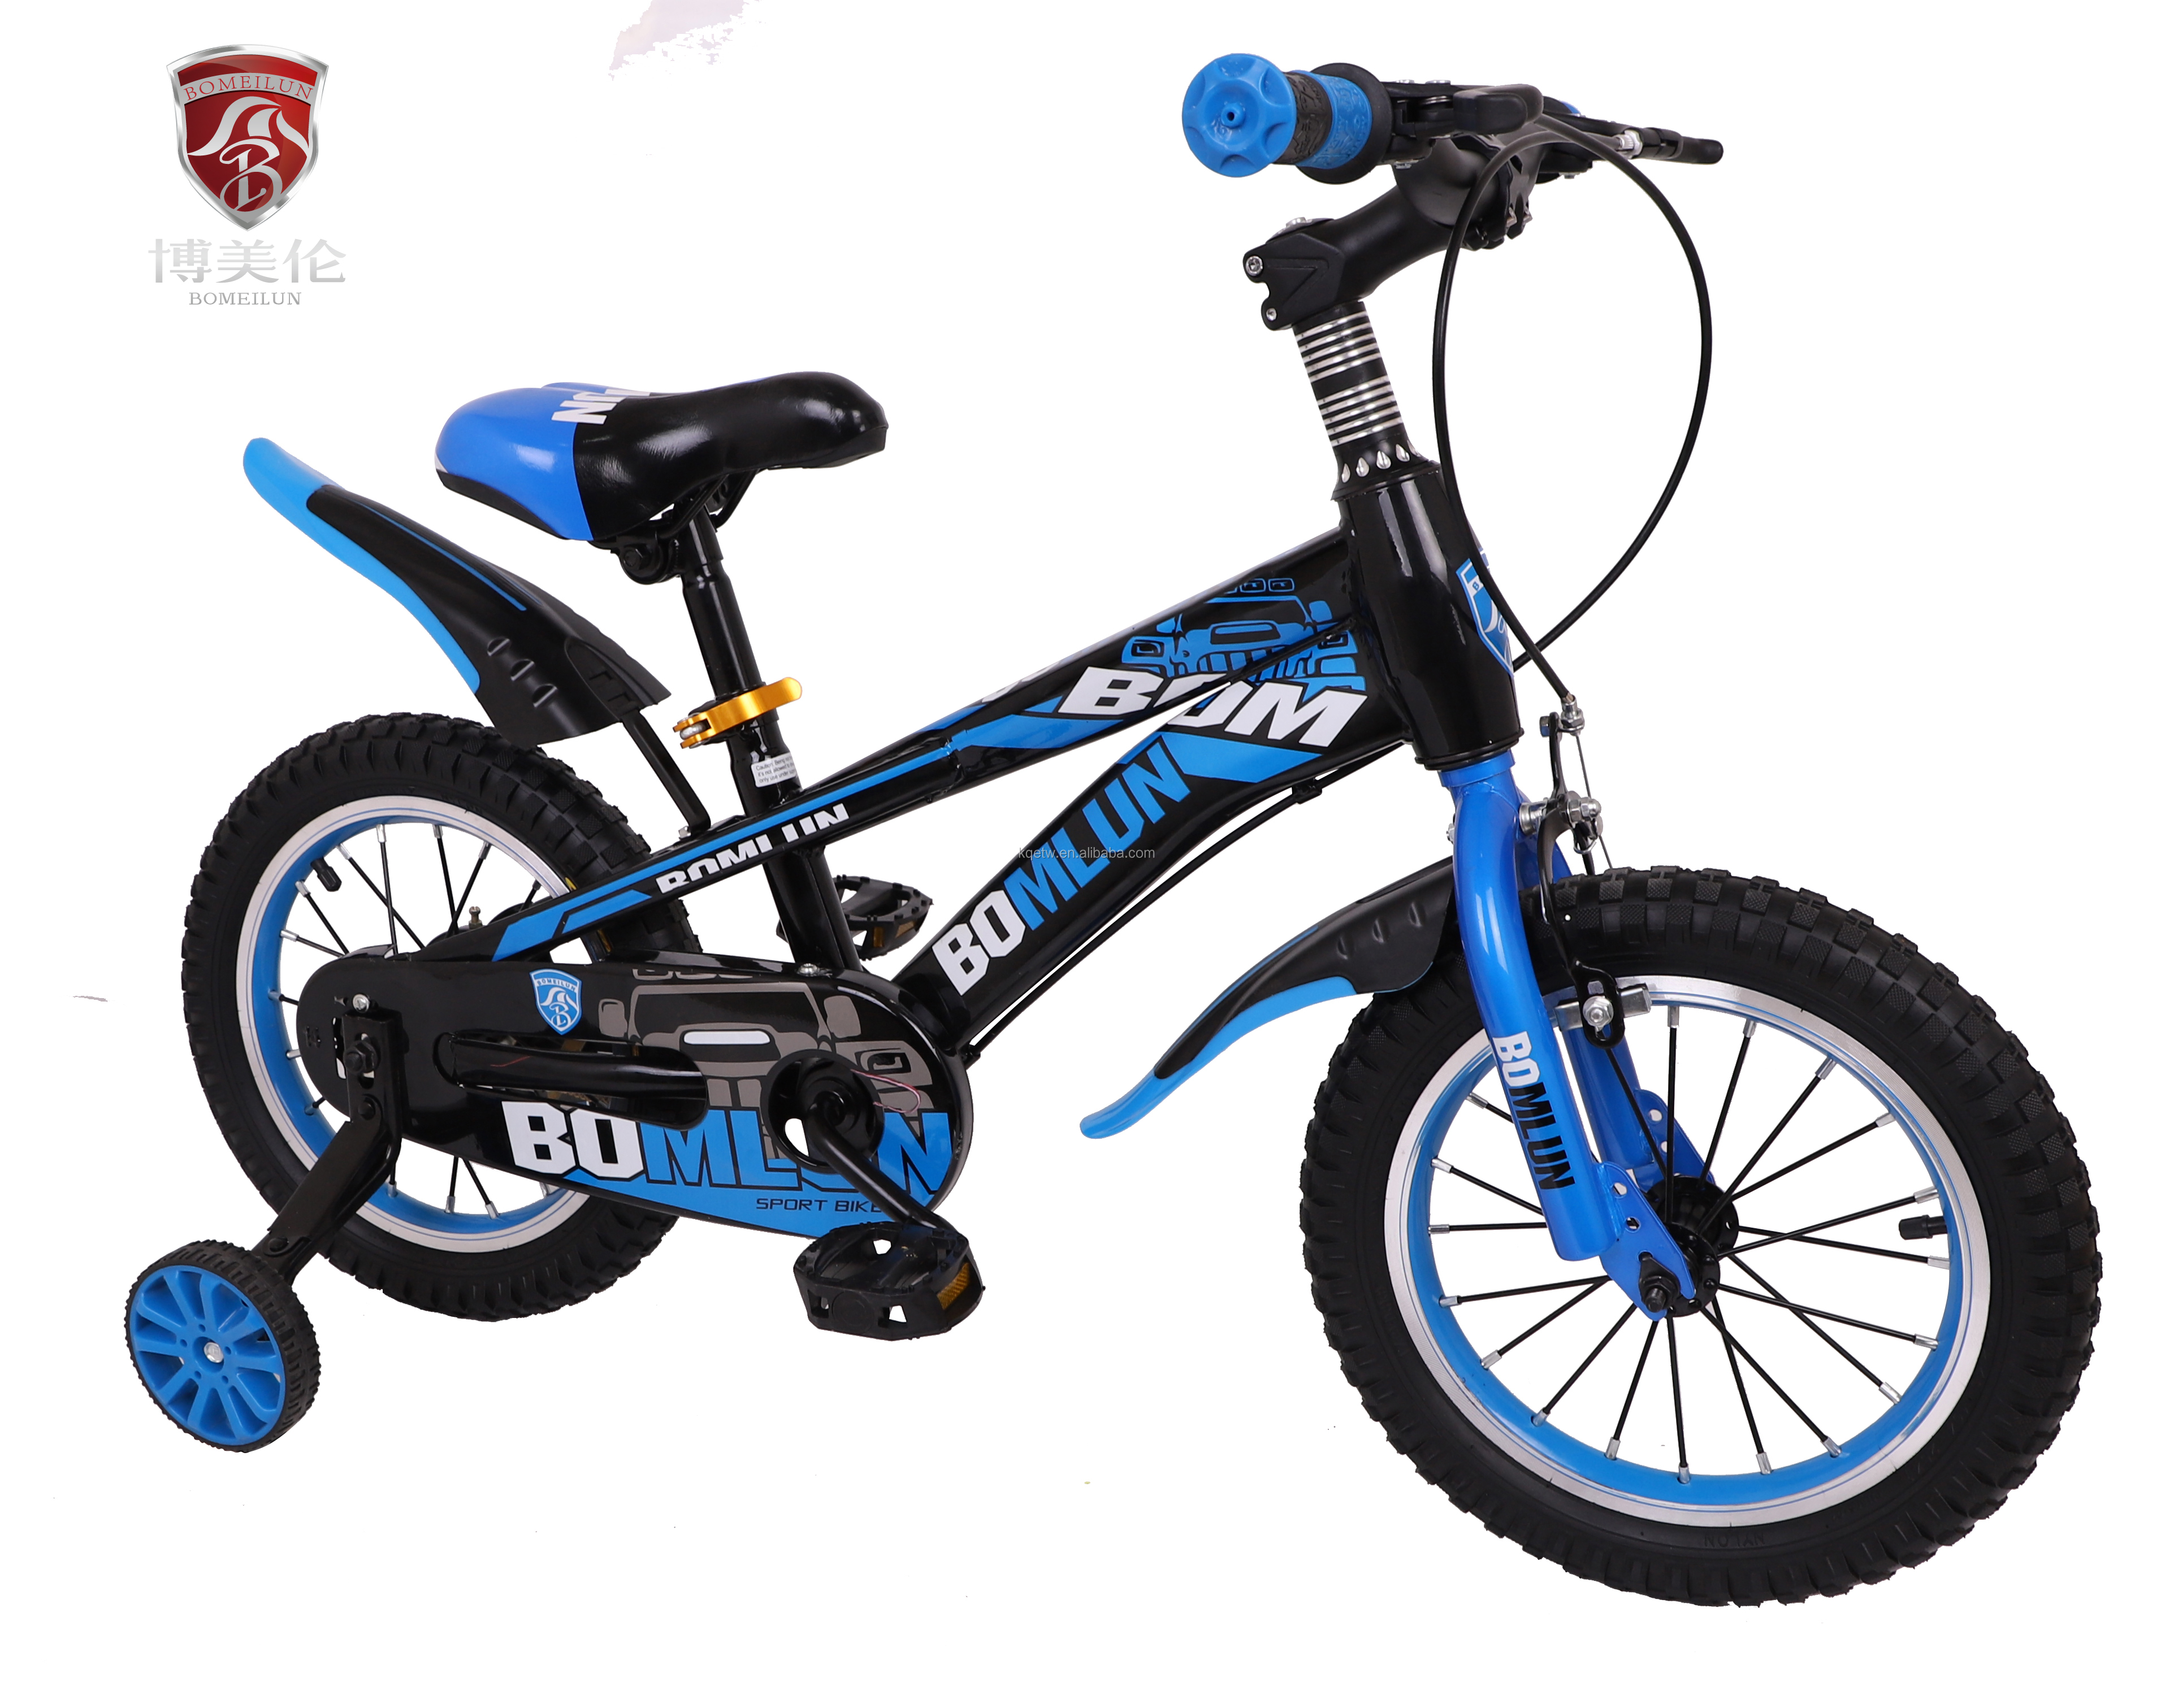 2019 Popular Baby Bicycle 12 Inch /16 Inch Cheap Kids Bike /kids Bikes 20  Inch With Nice Color Made In China Big Factory - Buy Popular Baby